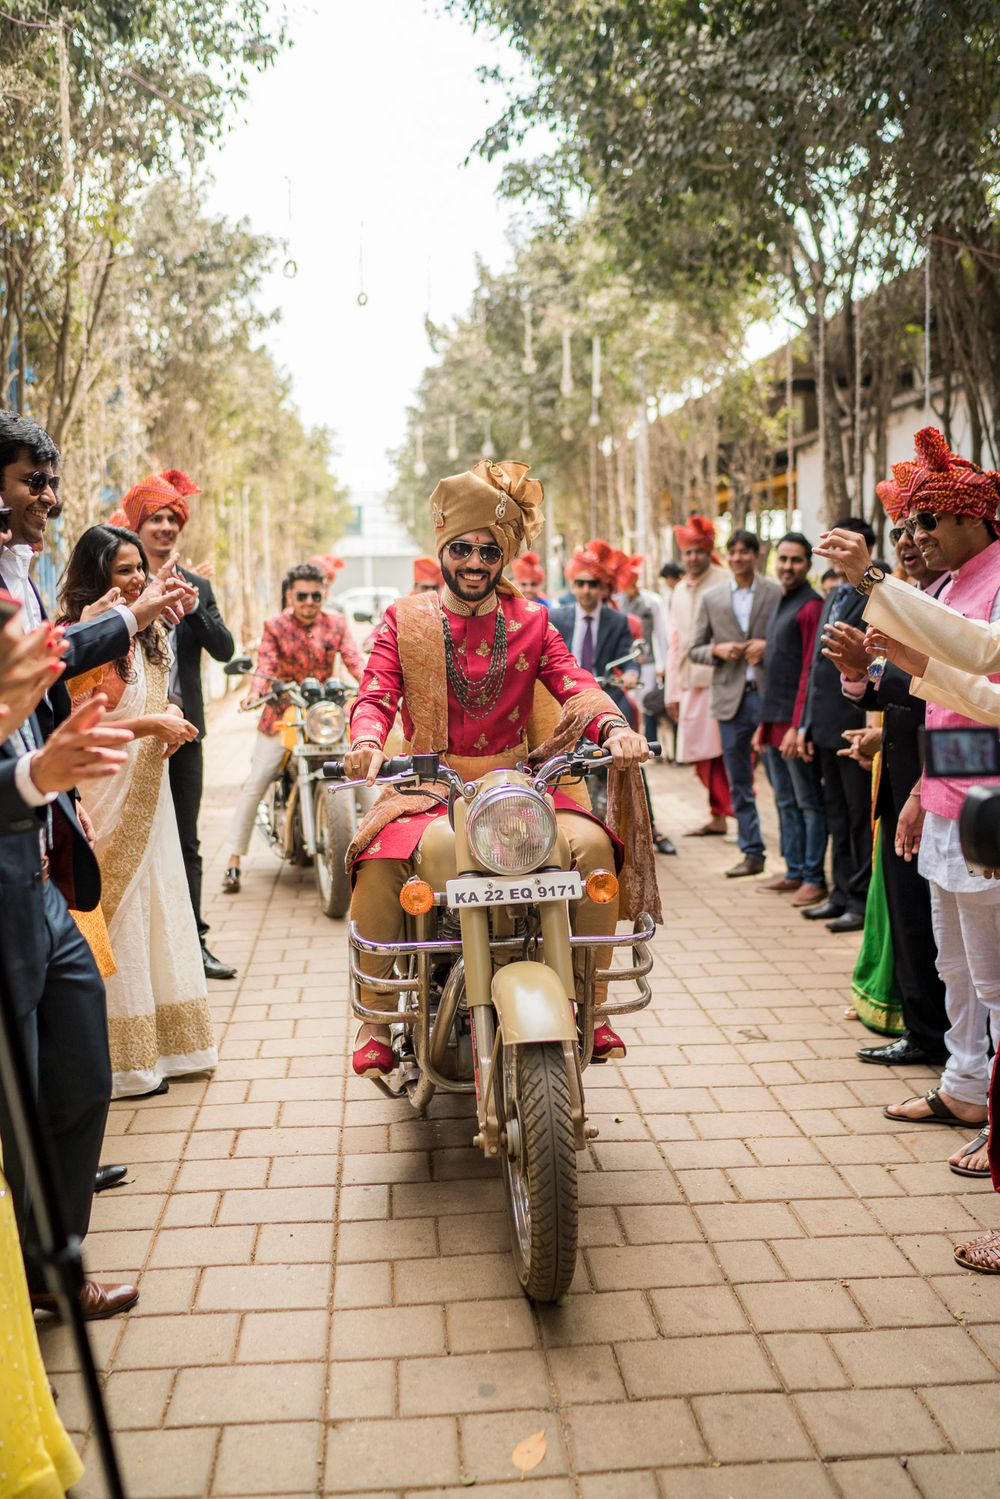 Photo of Groom entering his wedding on a bike